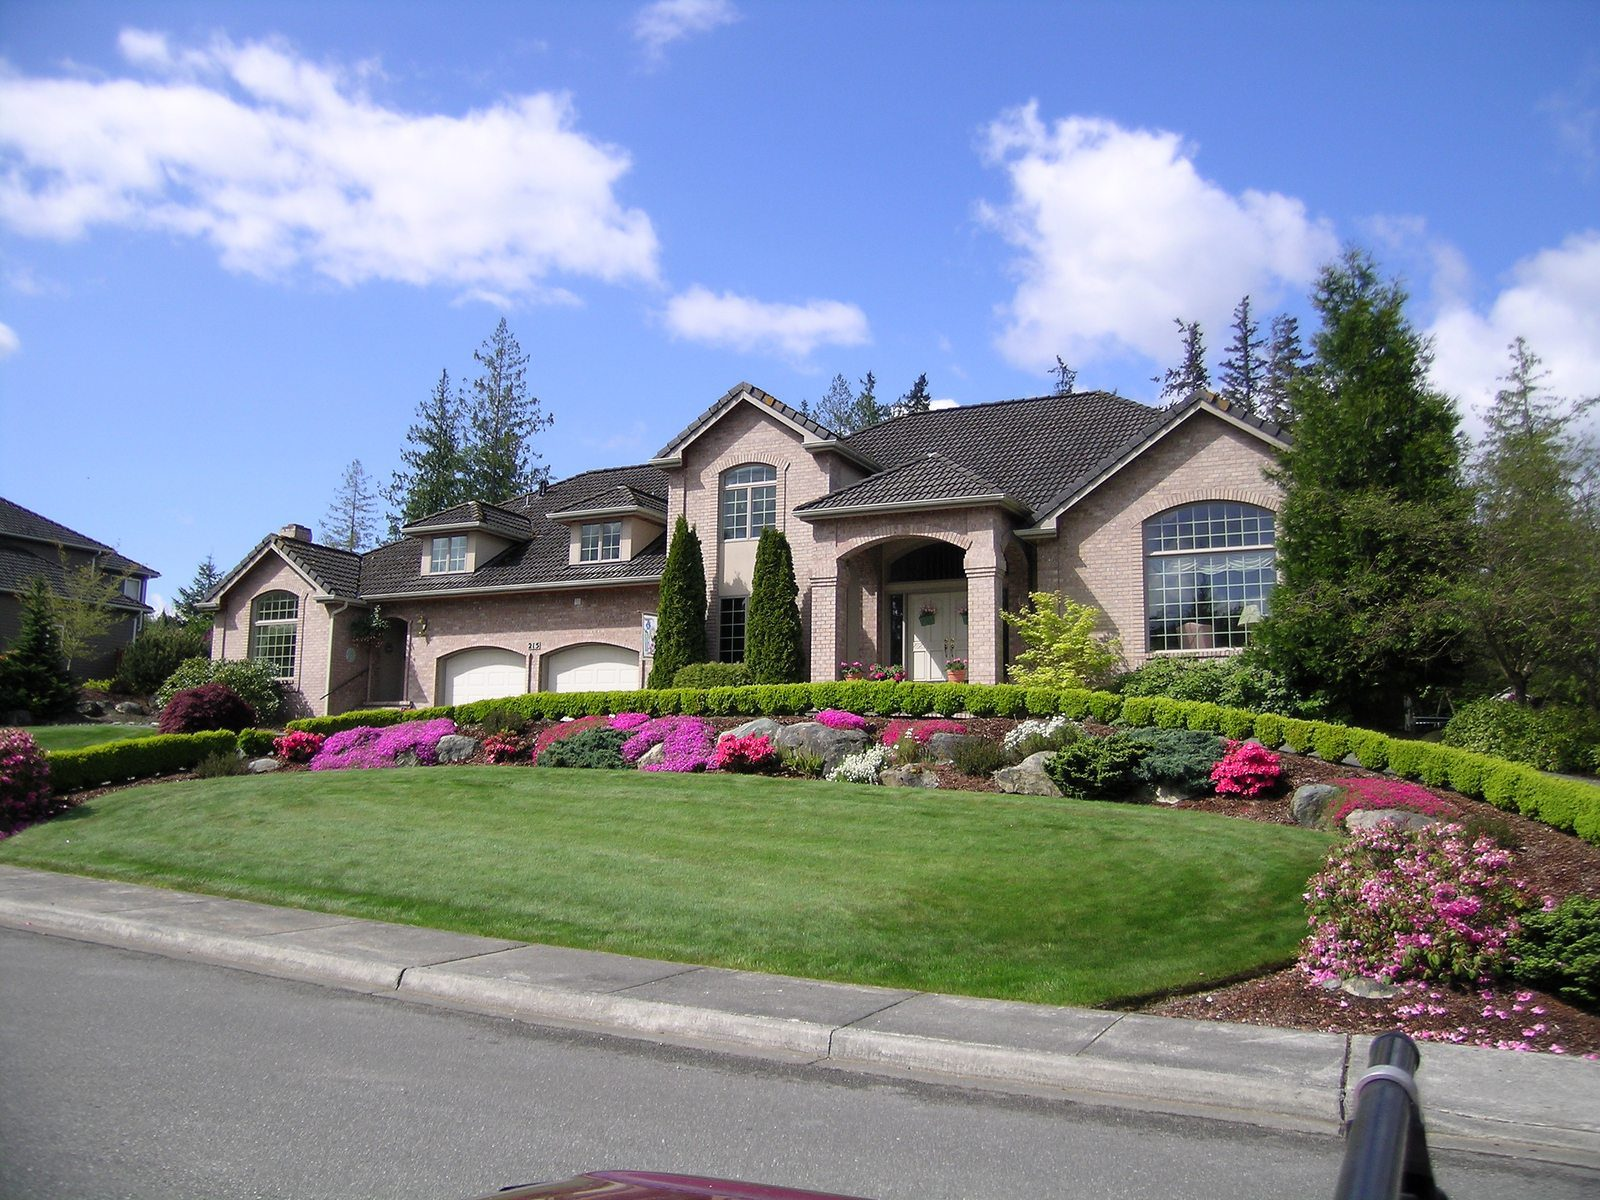 Landscaping Tips From the Pros - Charlotte Home Sales